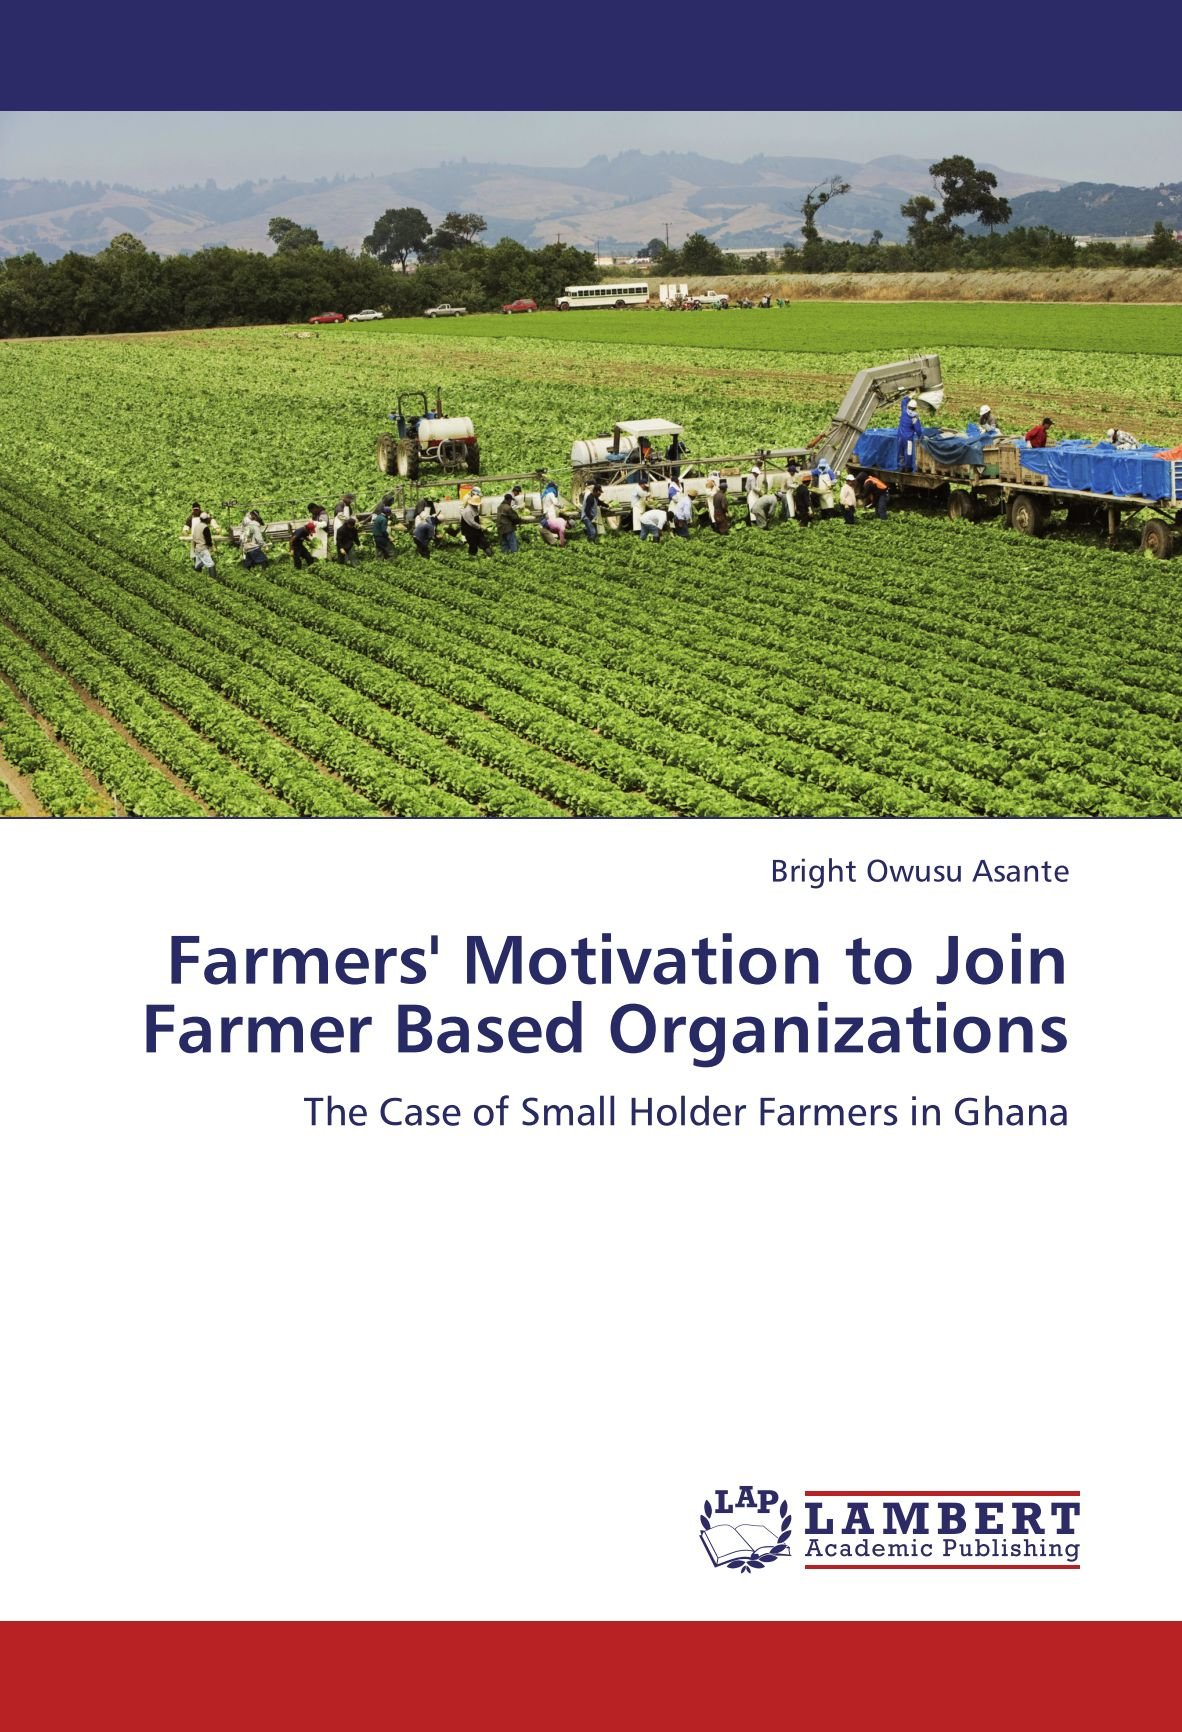 Download Farmers' Motivation to Join Farmer Based Organizations: The Case of Small Holder Farmers in Ghana ebook